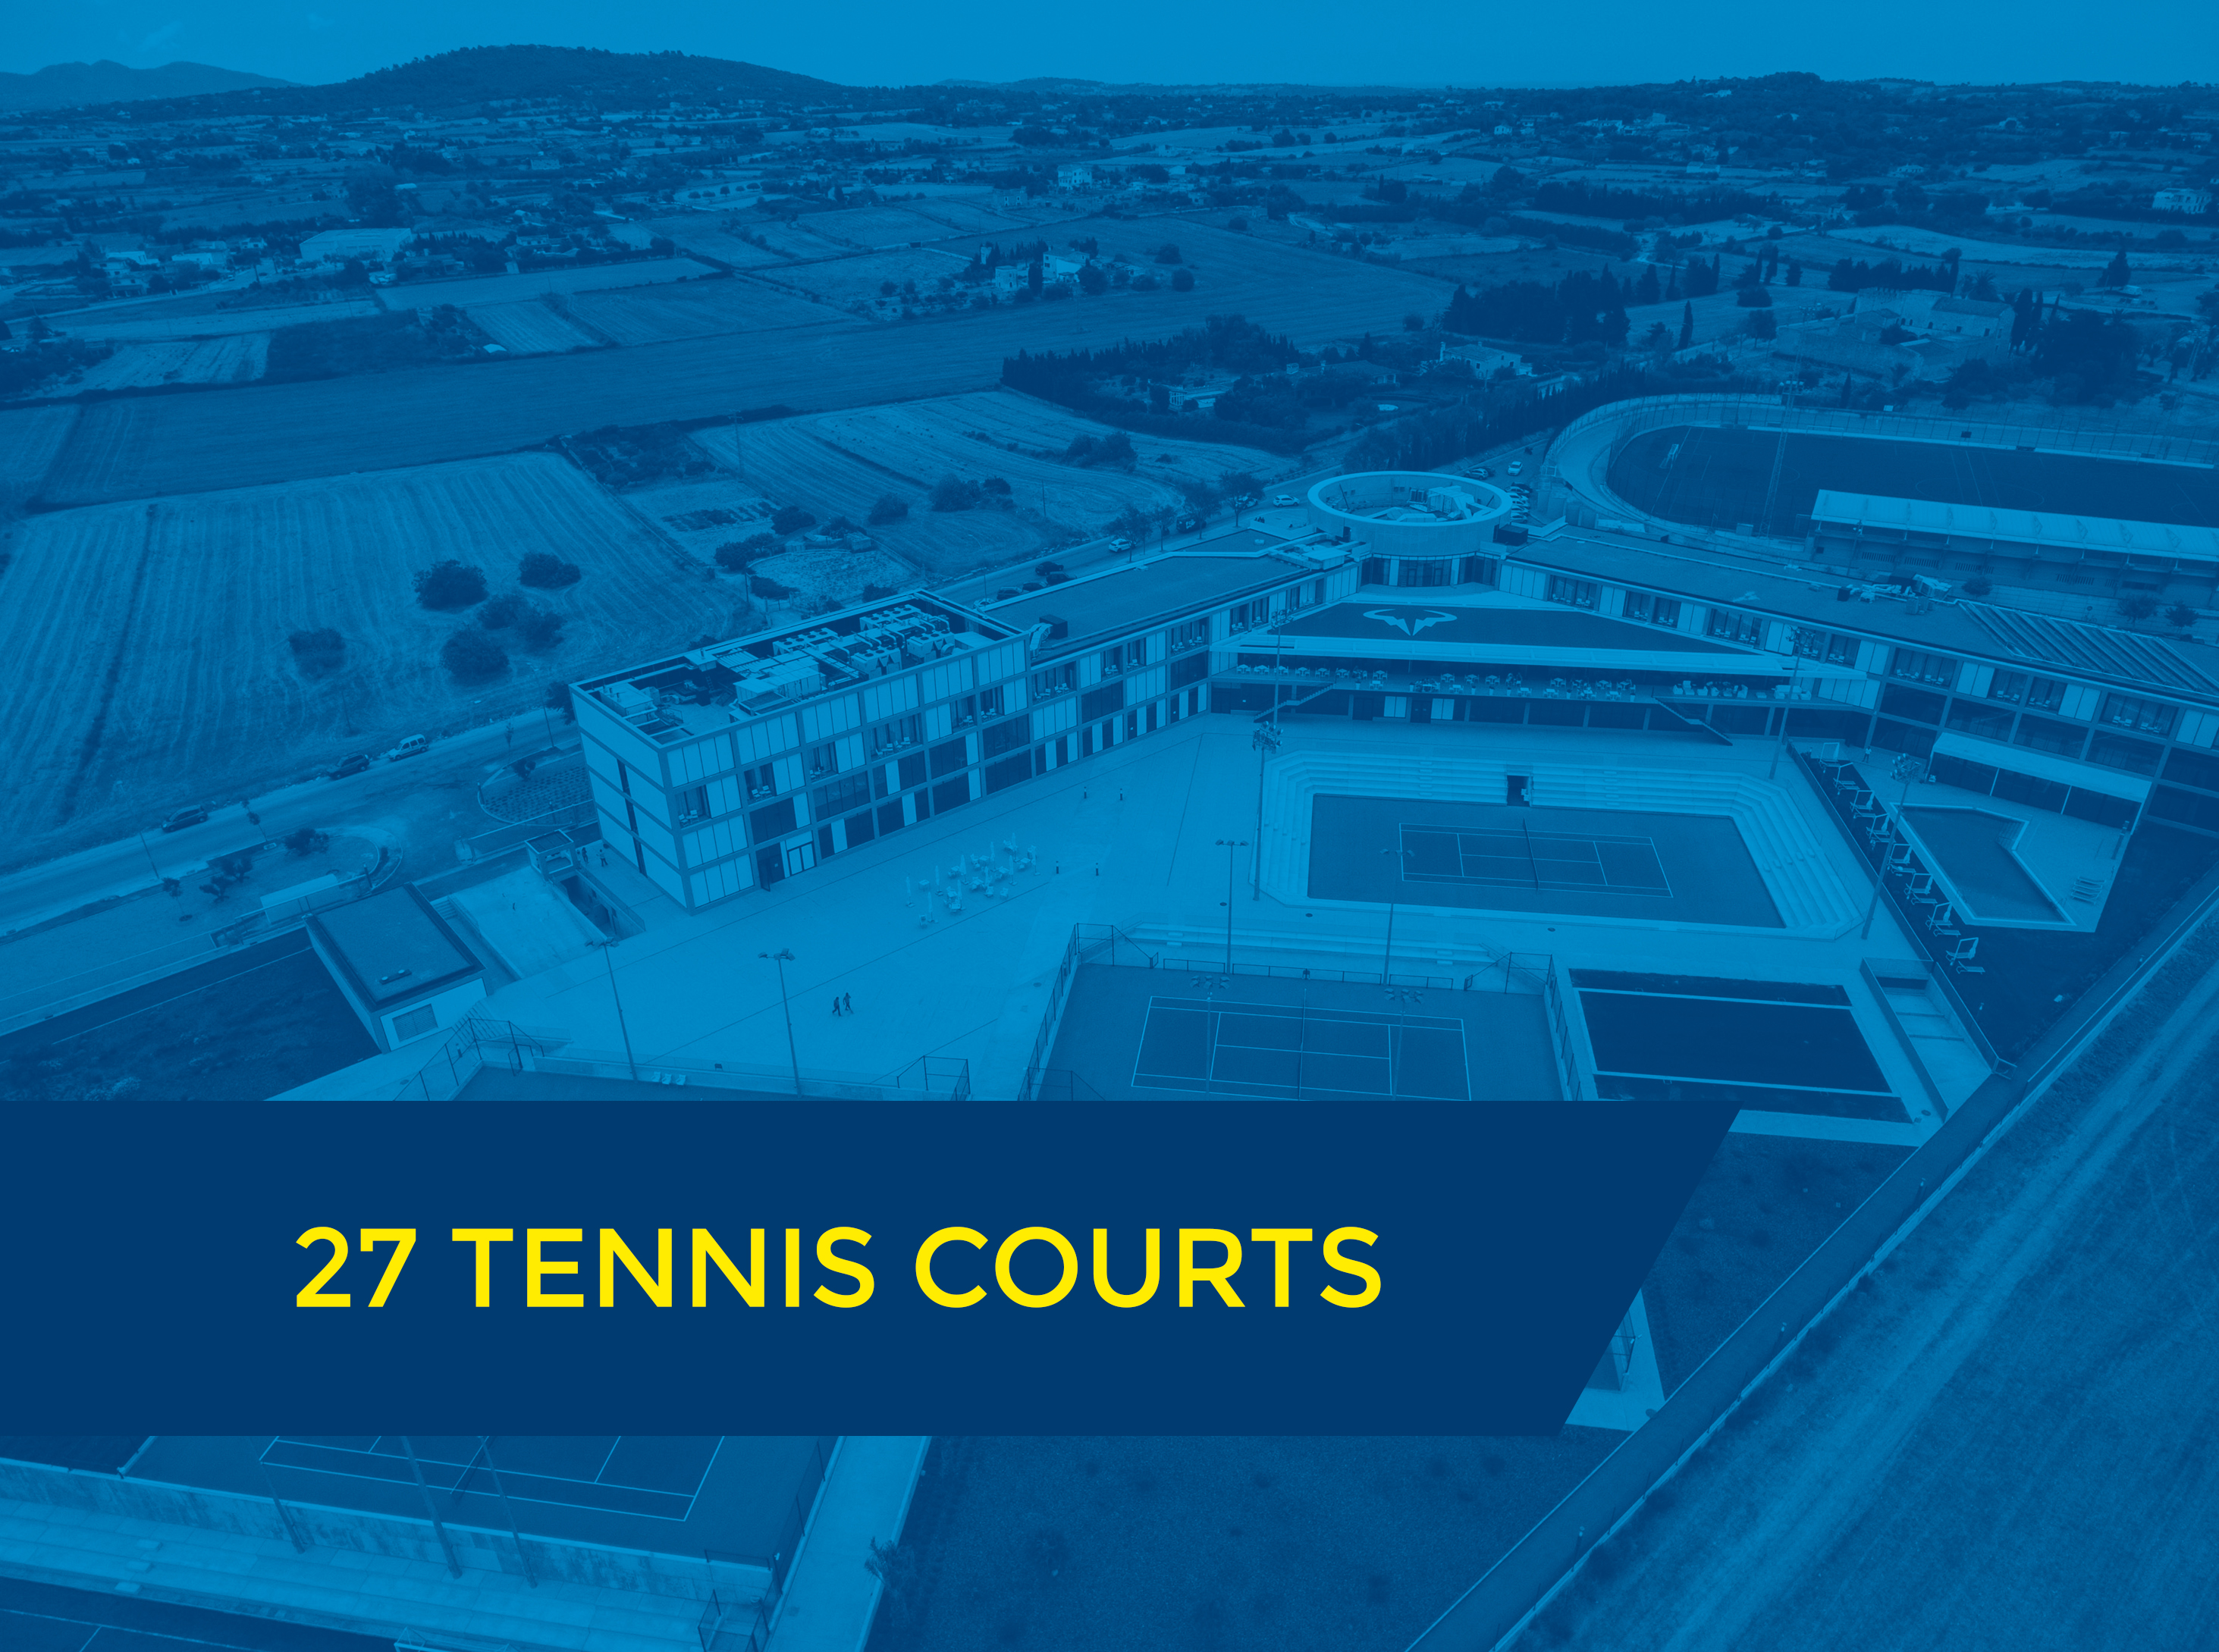 27 courts with text